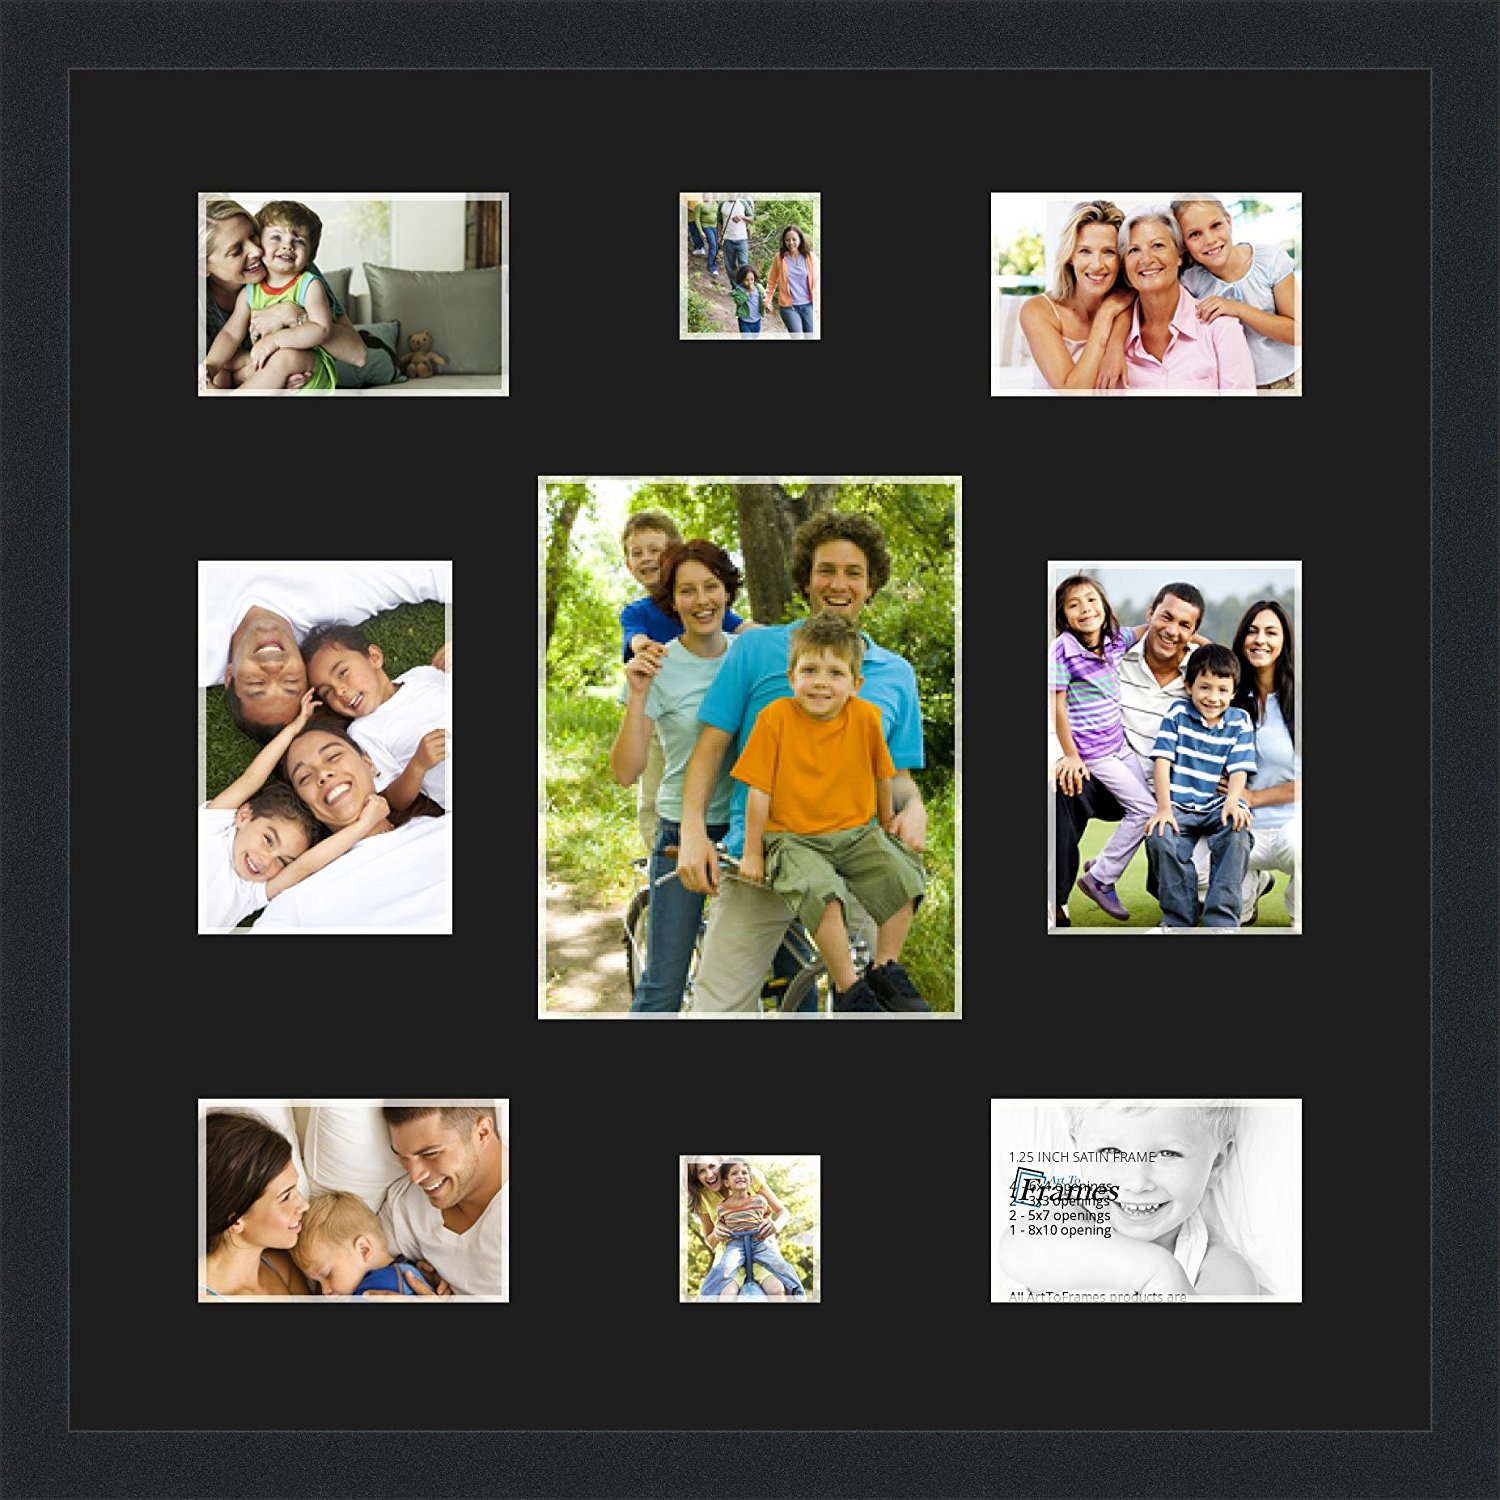 Art to Frames Double-Multimat-409-89/89-FRBW26079 Collage Photo Frame Double Mat with 1 - 8x10 and 2 - 5x7, 3x3 and 4 - 4x6 Openings and Satin Black Frame